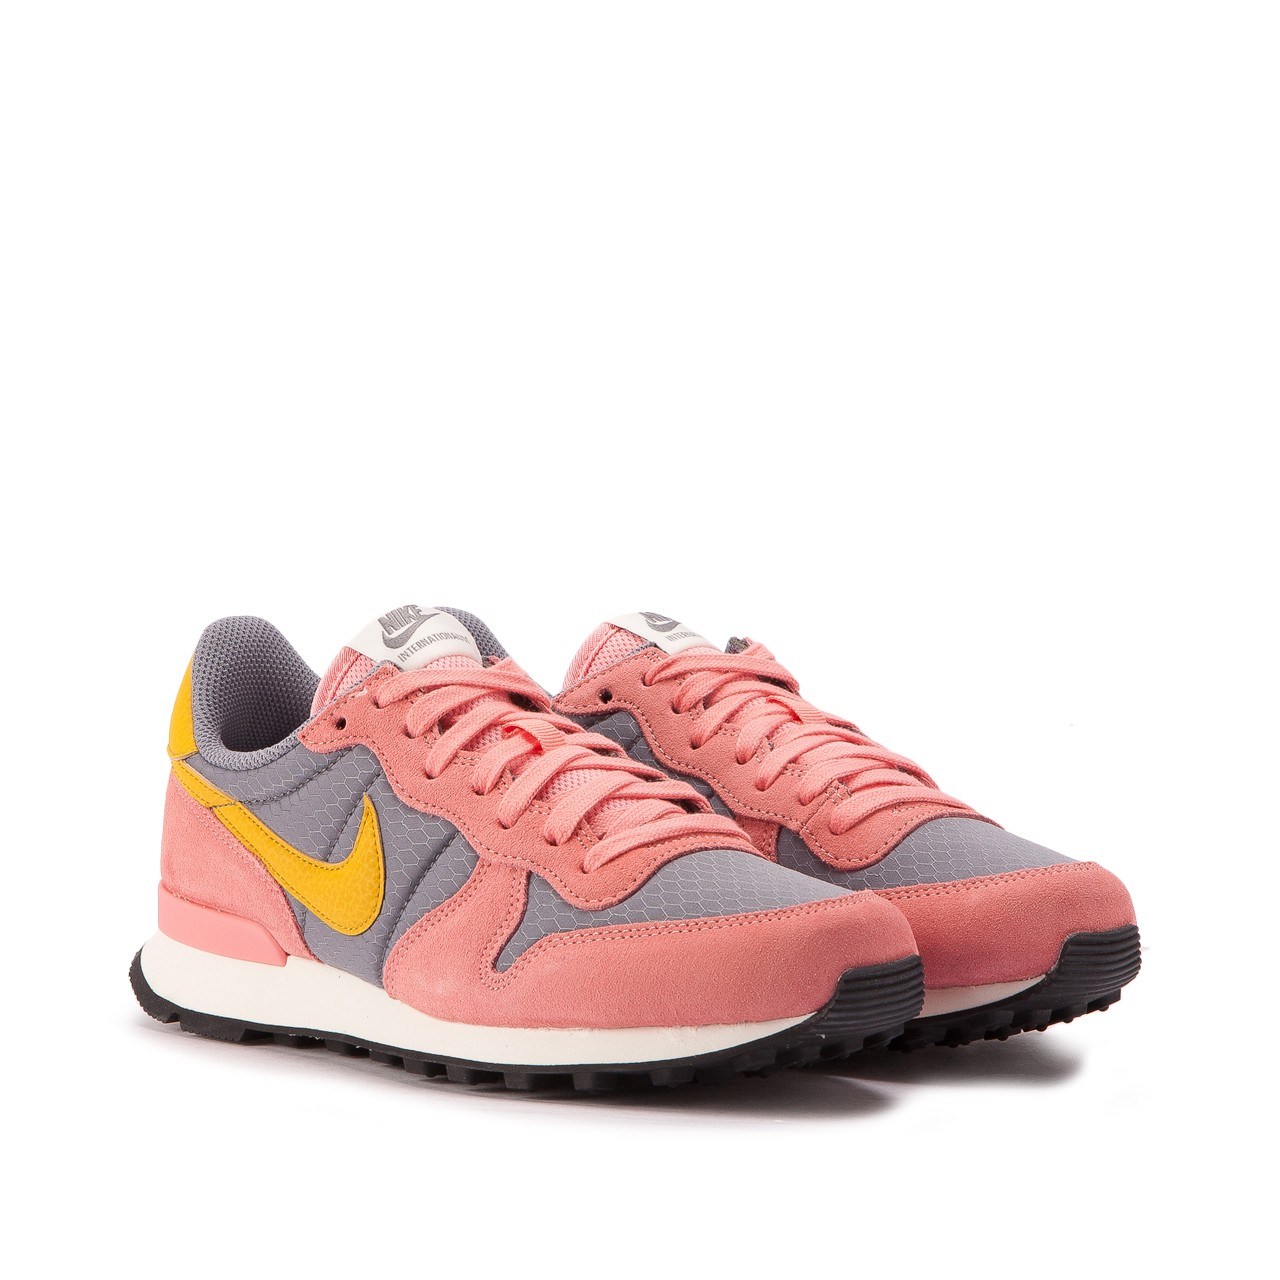 nike the internationalist women's